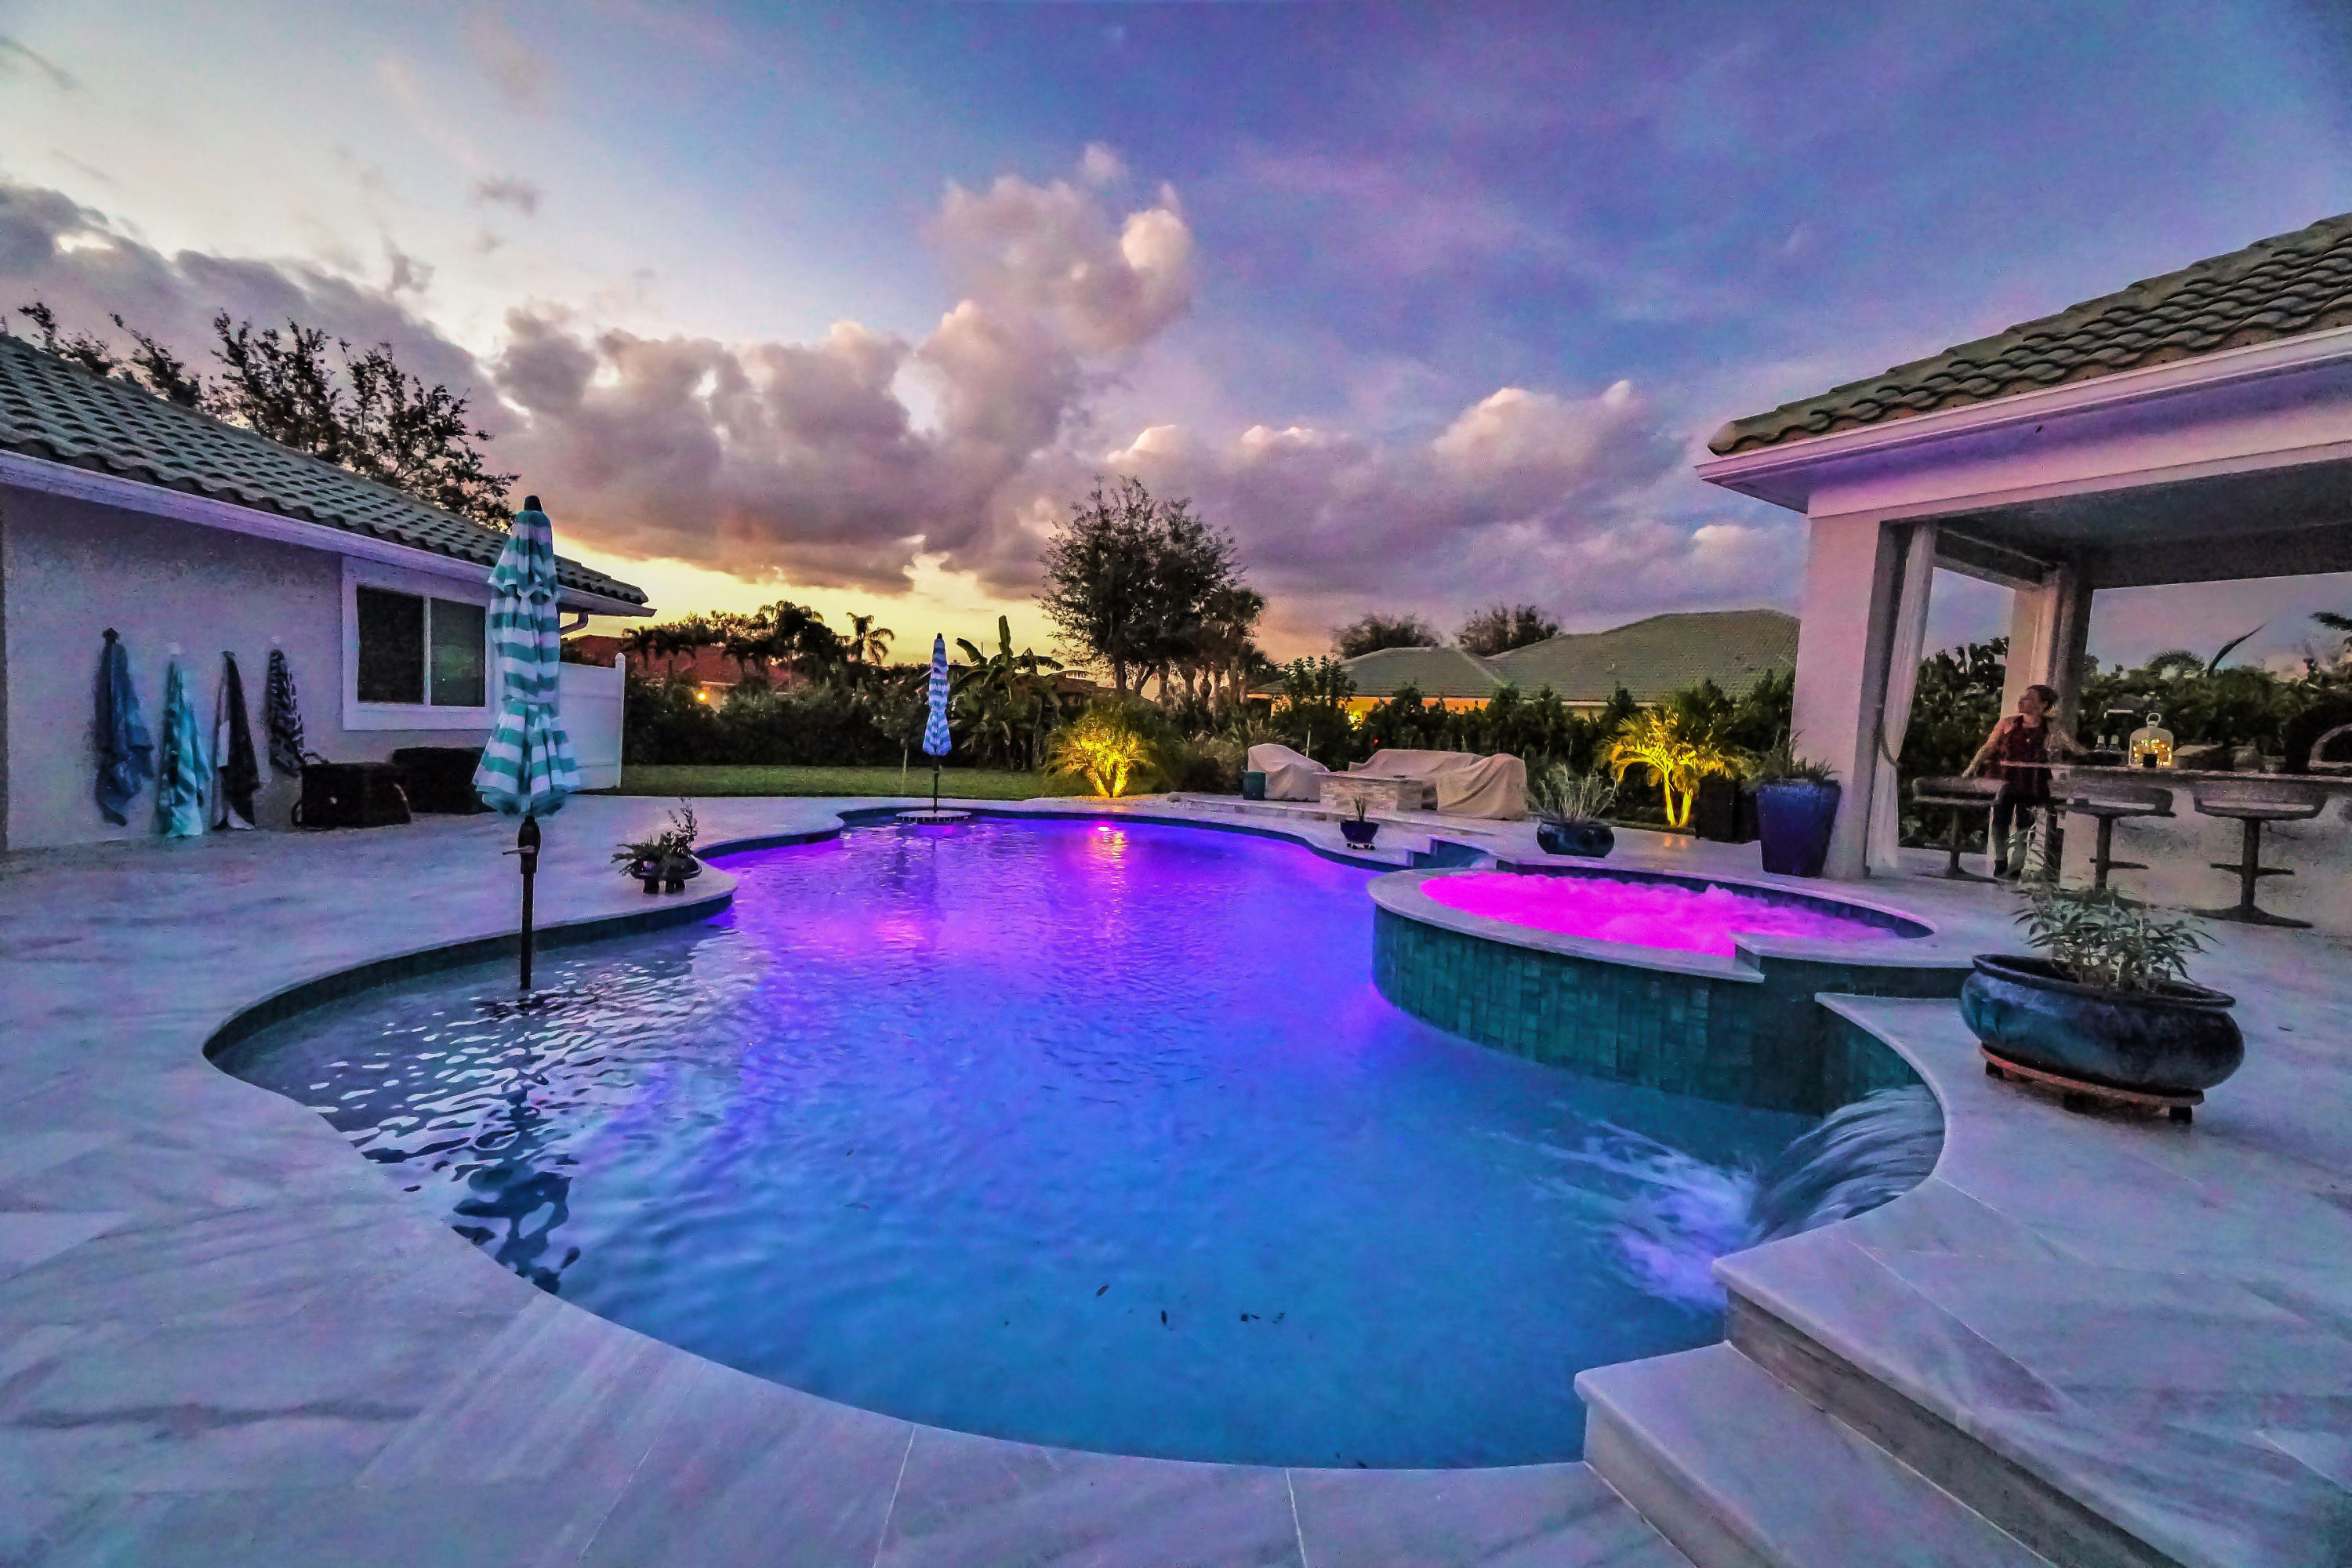 15925 Springhill Court, Wellington, Florida 33414, 5 Bedrooms Bedrooms, ,3 BathroomsBathrooms,Single Family,For Rent,MEADOW WOOD,Springhill,RX-10561661